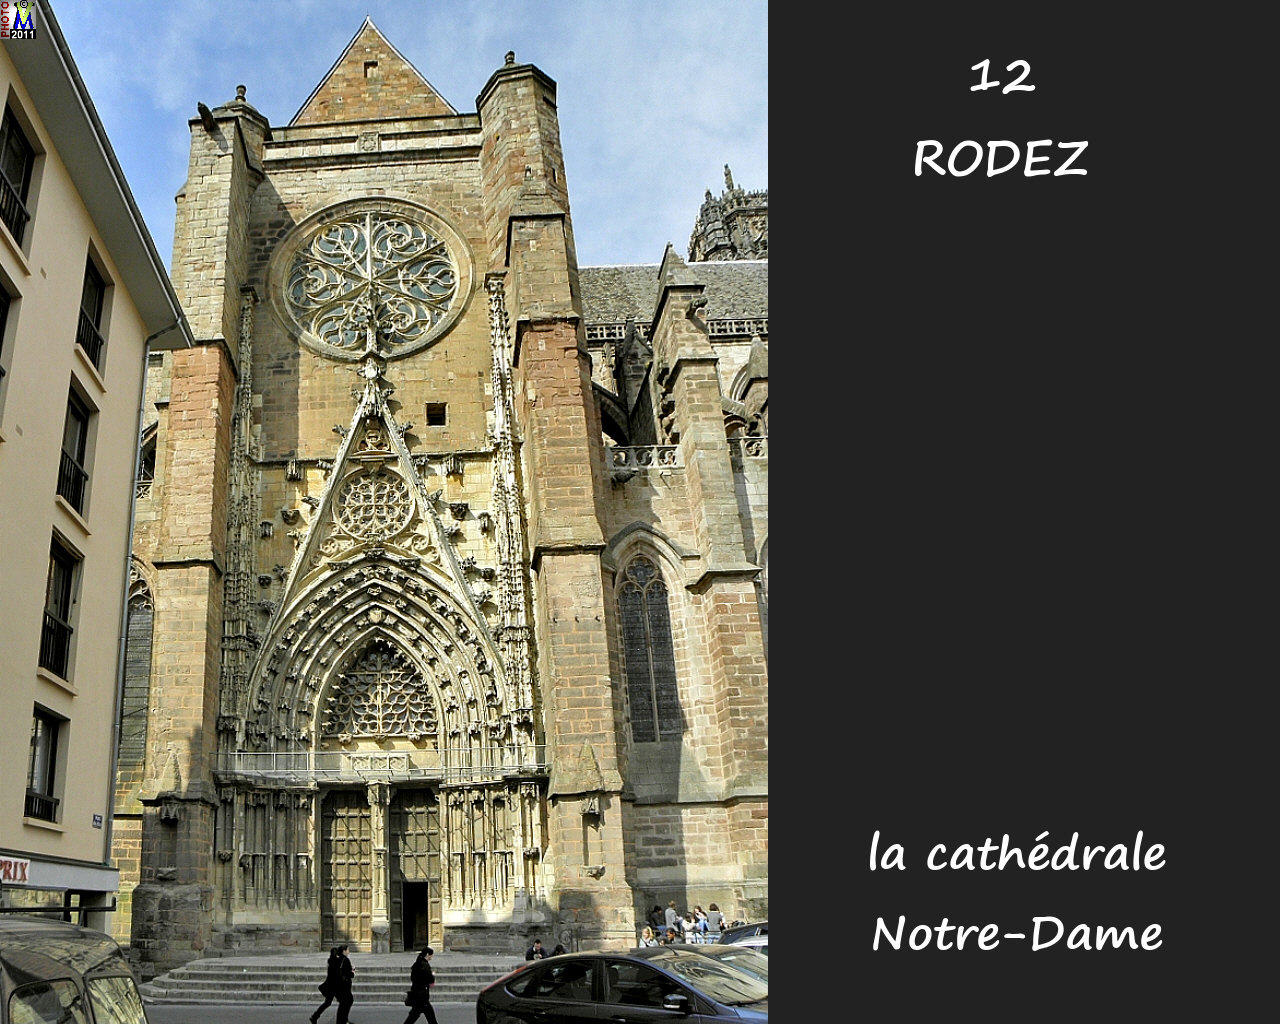 12RODEZ_cathedrale_172.jpg